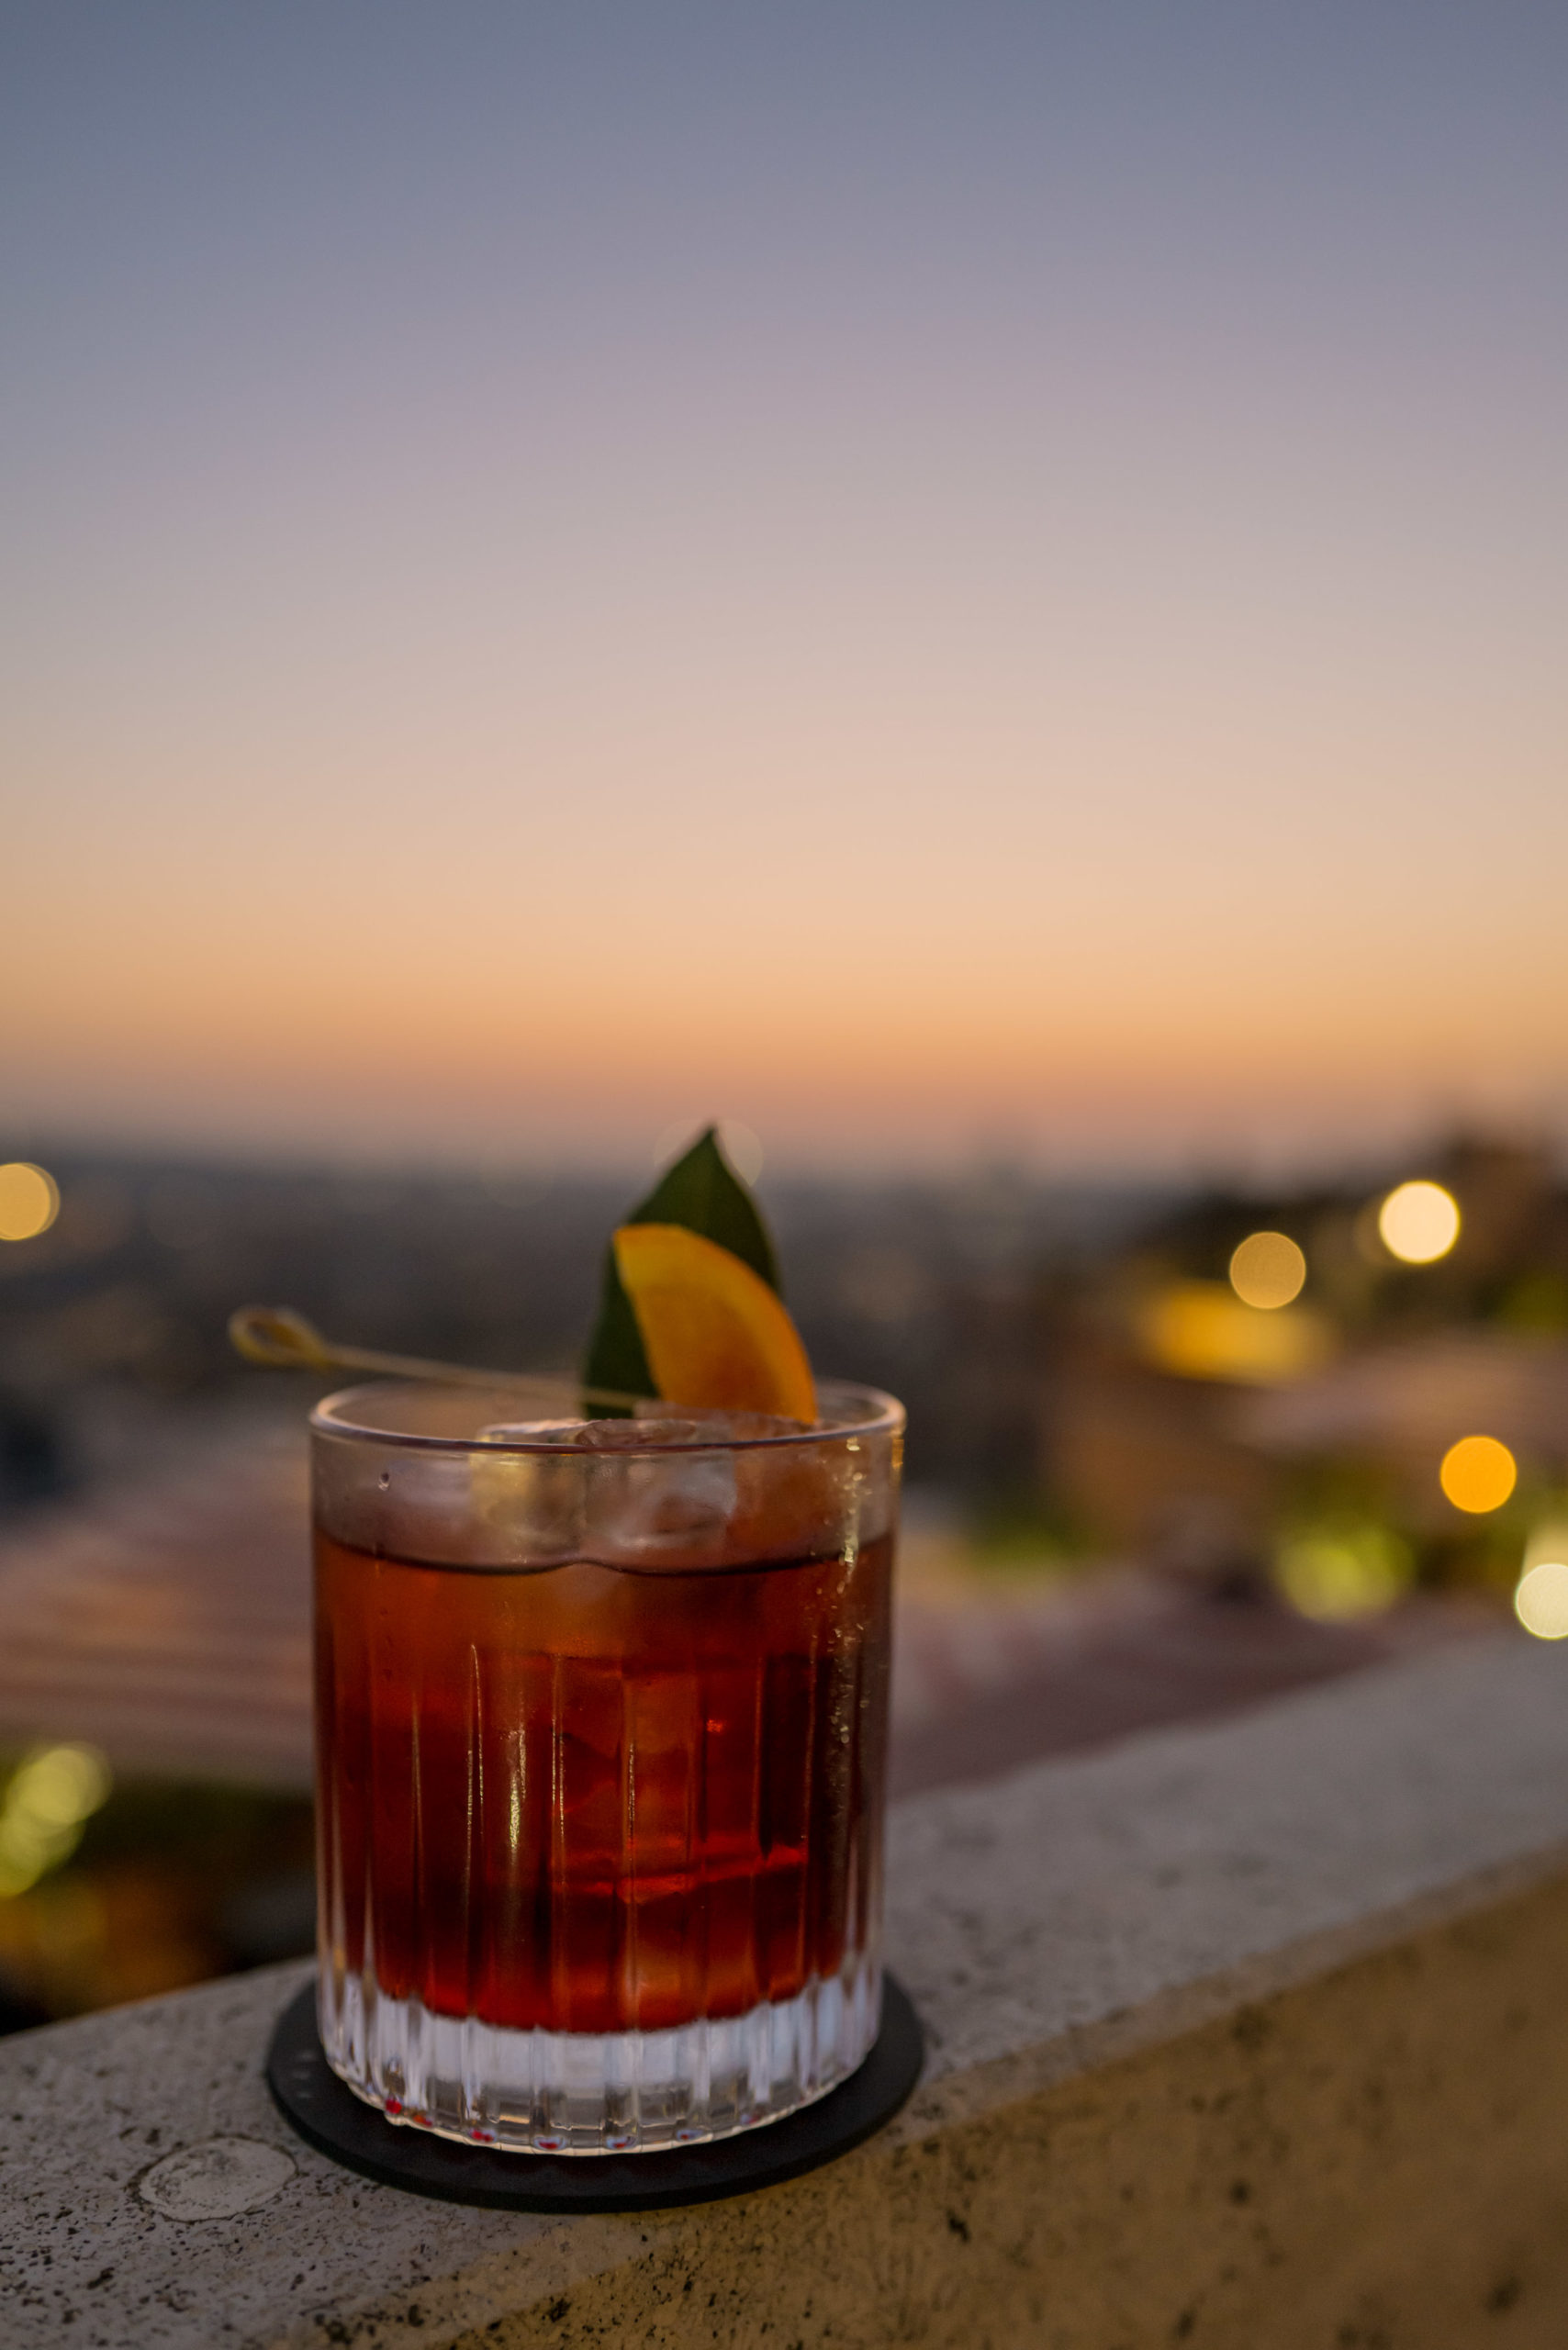 Order a Cielo Negroni at sunset on the rooftop terrace Rocco Forte's Hotel de la Ville Rome - The Taste Edit #rome #hotel #negroni #travel